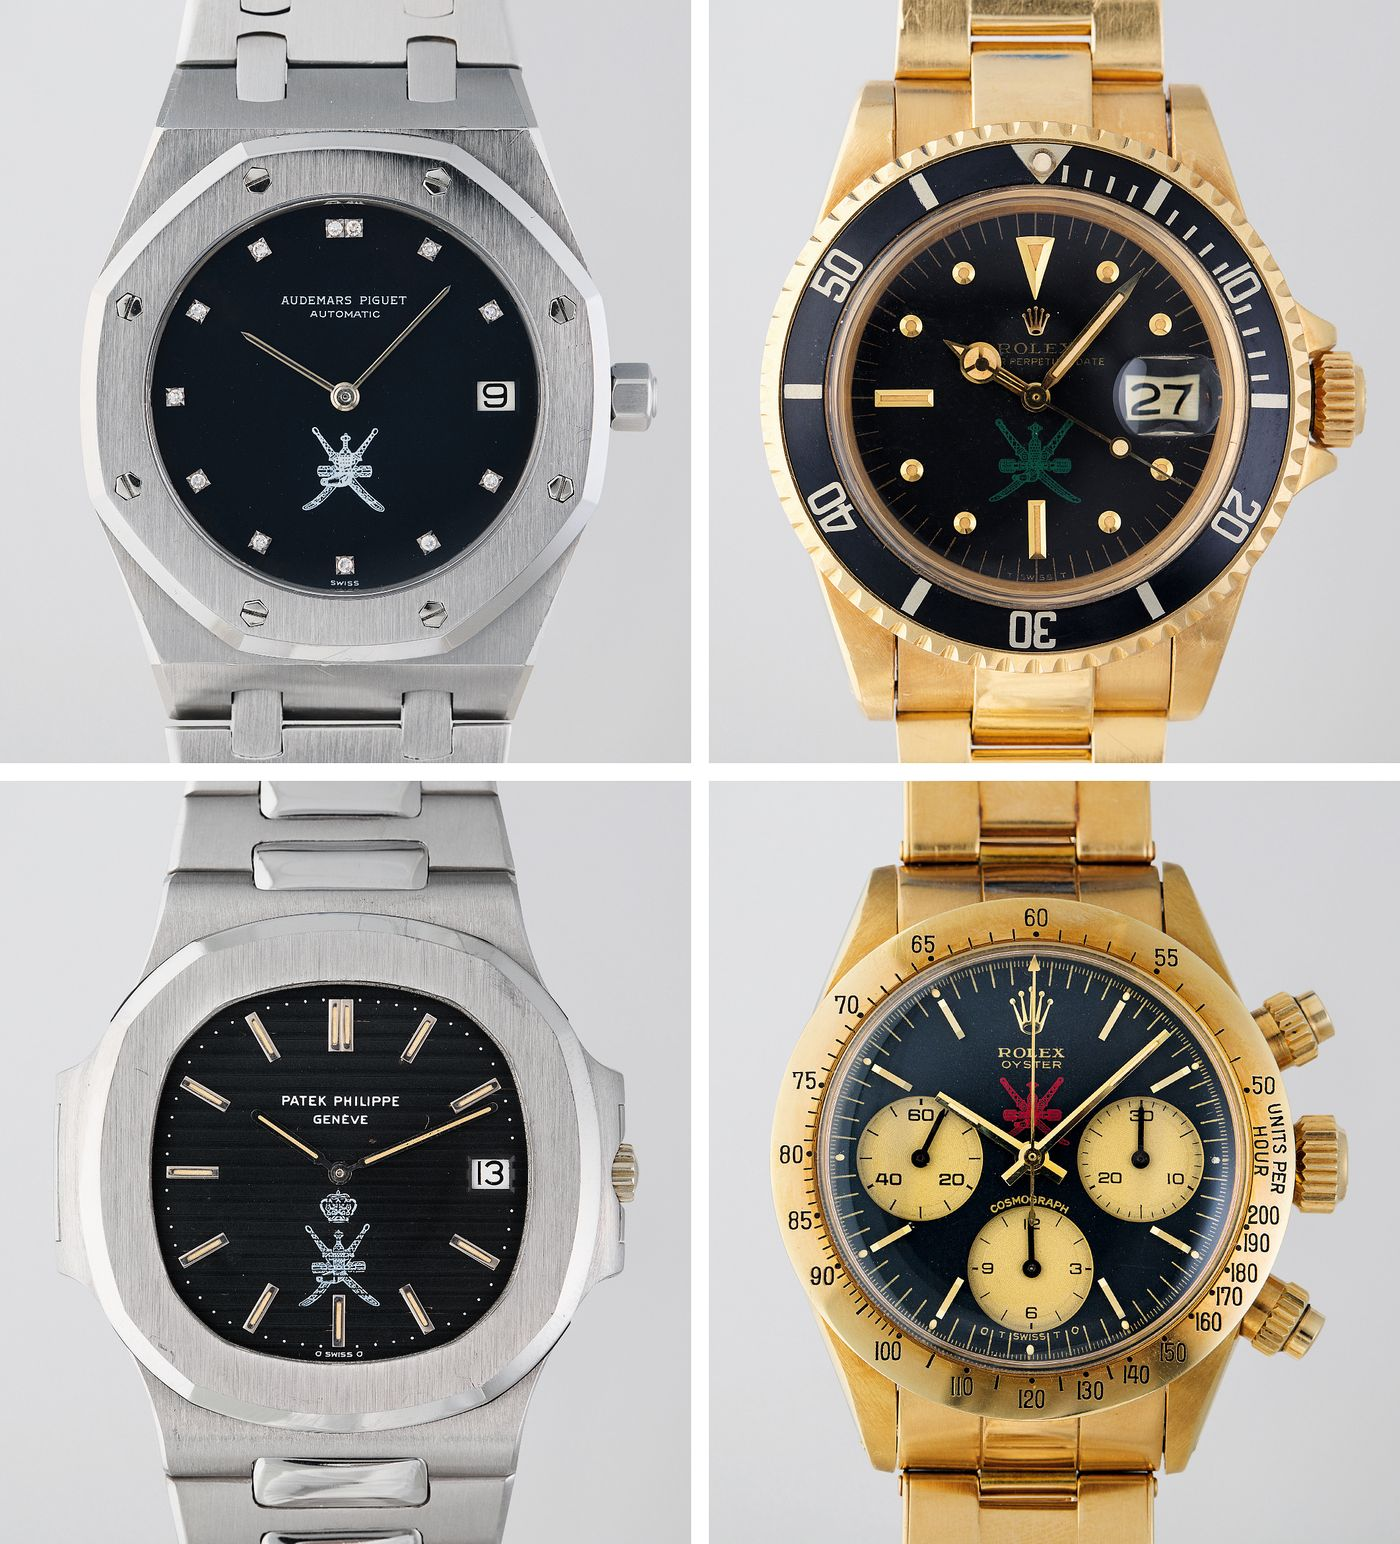 Wrist watch price in oman - The So Called Khanjar Watches Were Direct Commissions From The Sultan Of Oman